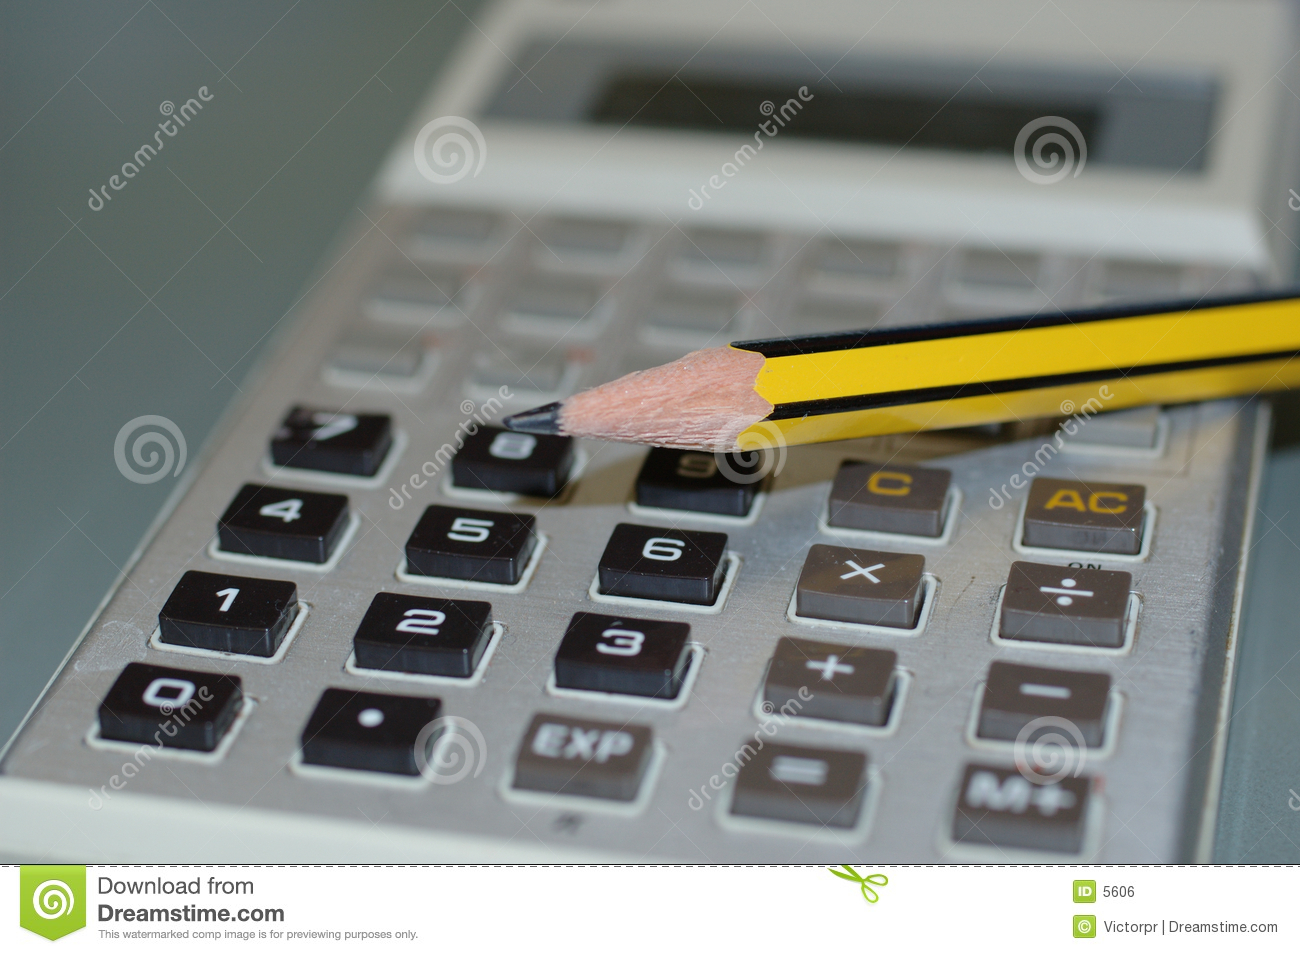 Calculatrice et un crayon